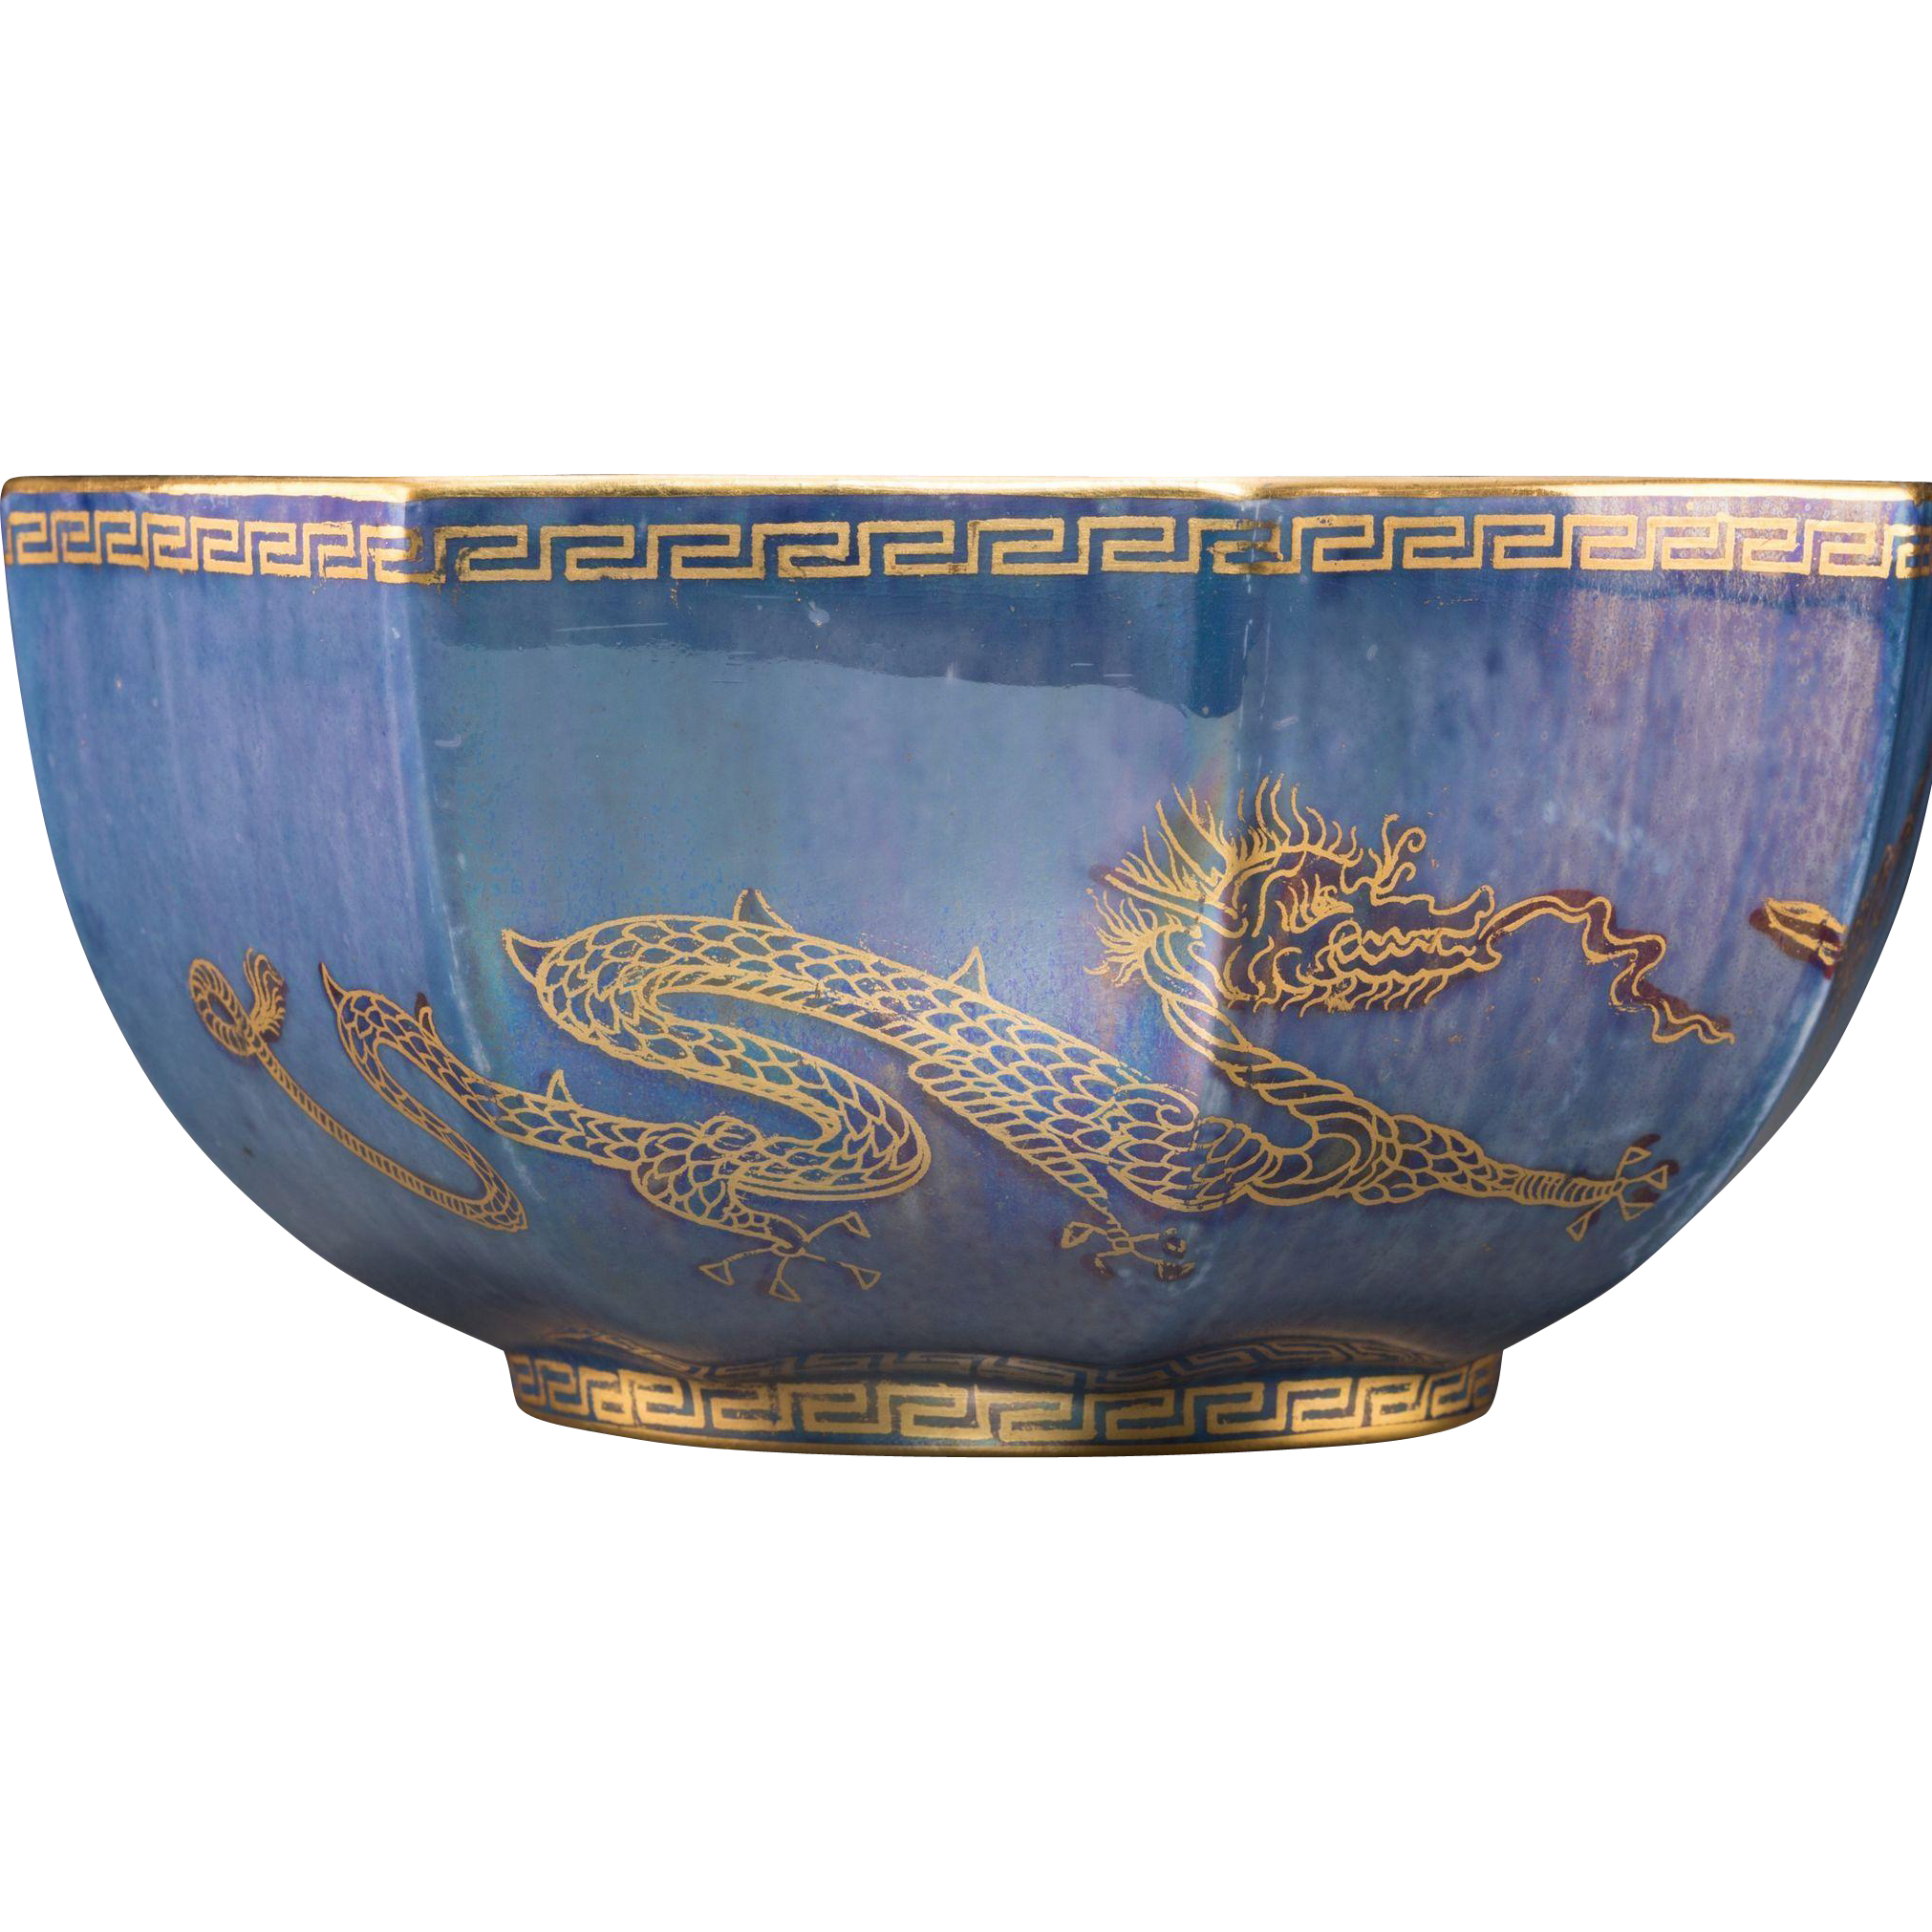 WEDGWOOD Dragon Lustre Porcelain Octagonal Bowl, From A Museum's Collection